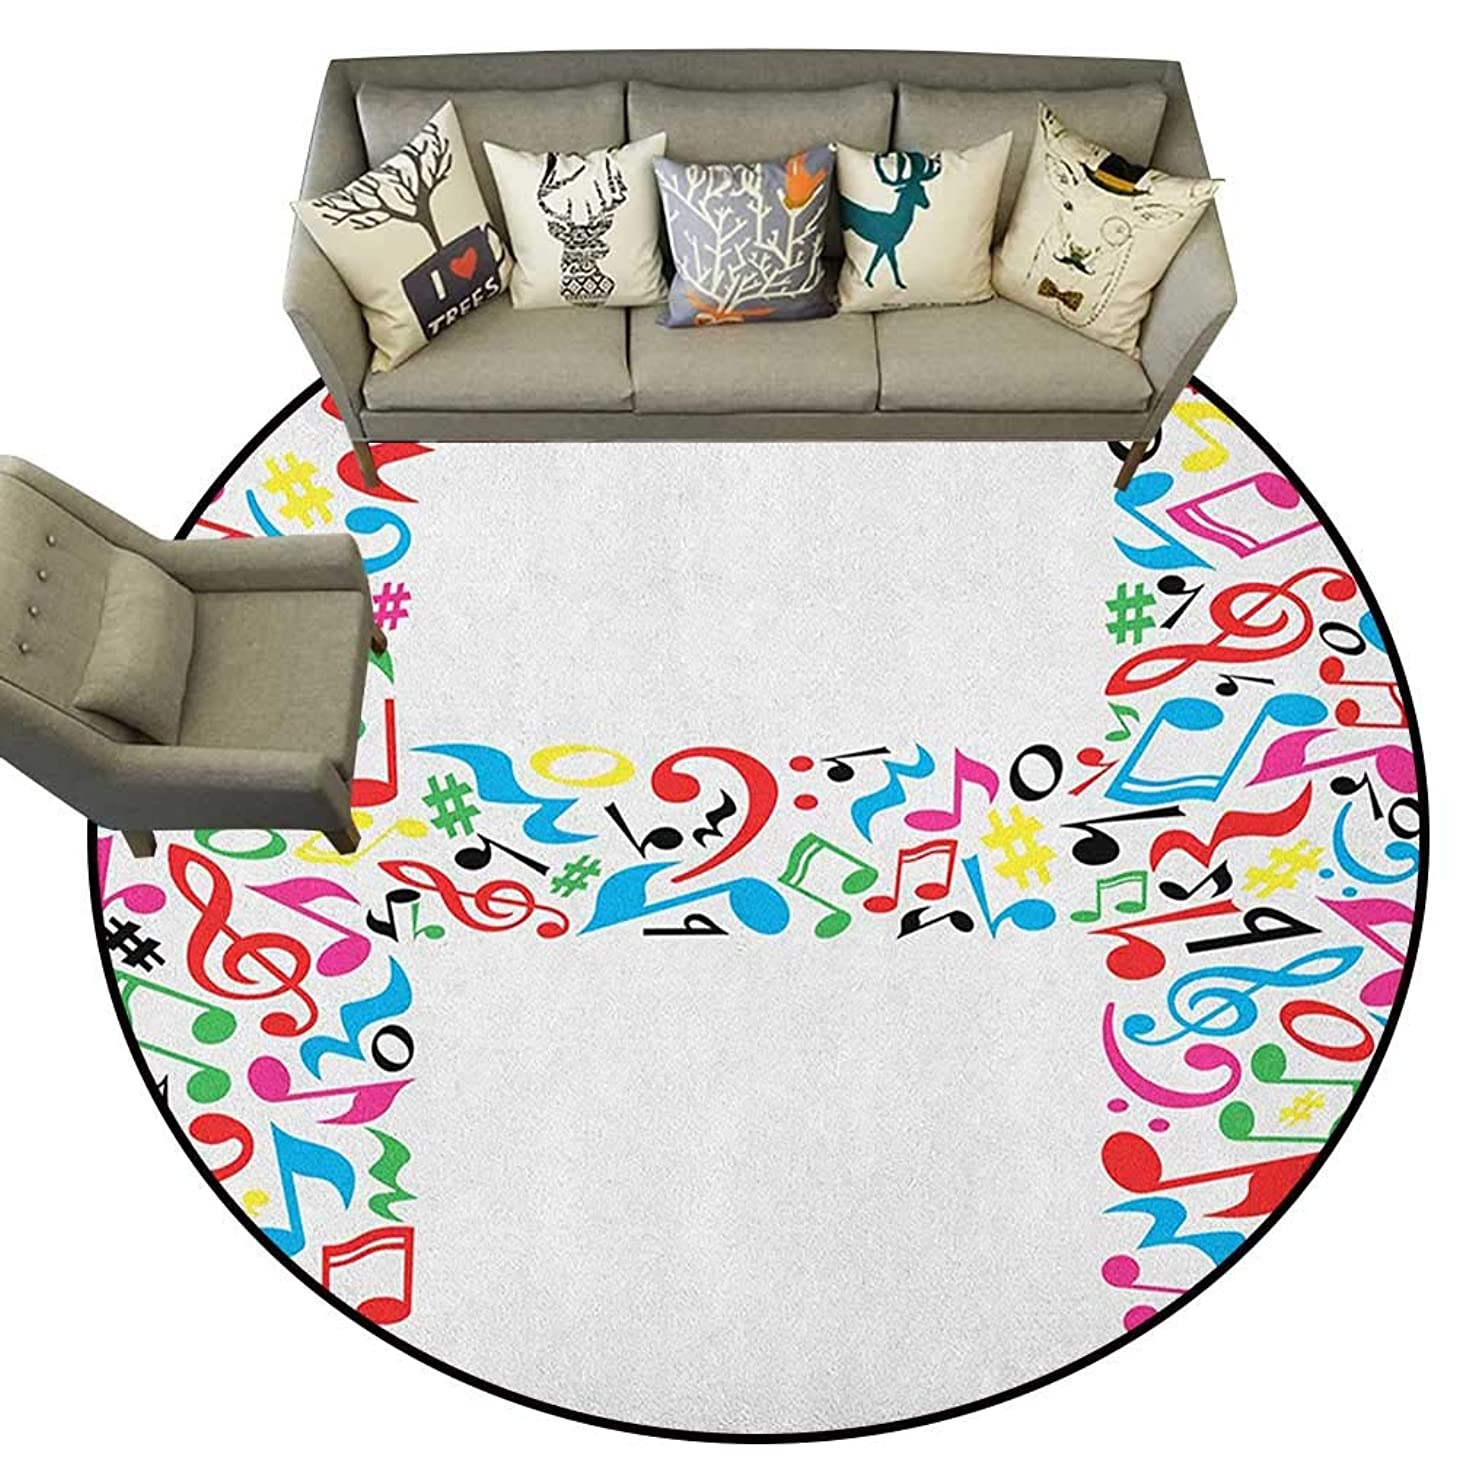 Letter H,Floor Mat Communication Tool Writing Language Element H Designed in Musical Notes Print D40 Living Room Round Mats Area Rugs